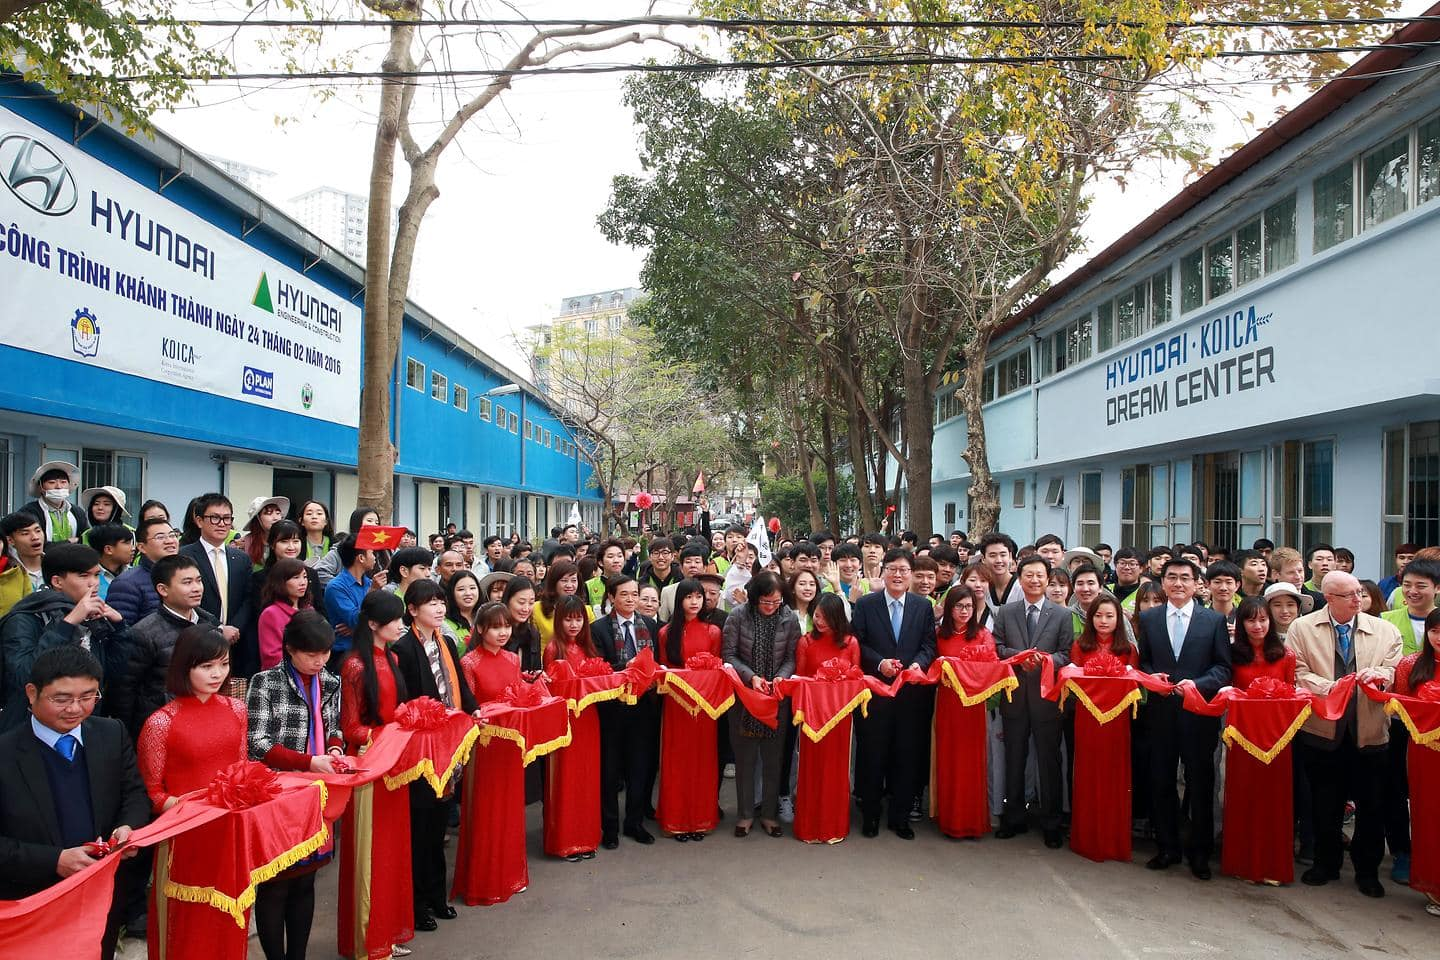 Hyundai Motor Holds Inauguration Ceremony of the Fourth 'Hyundai-KOICA Dream Center' in Vietnam